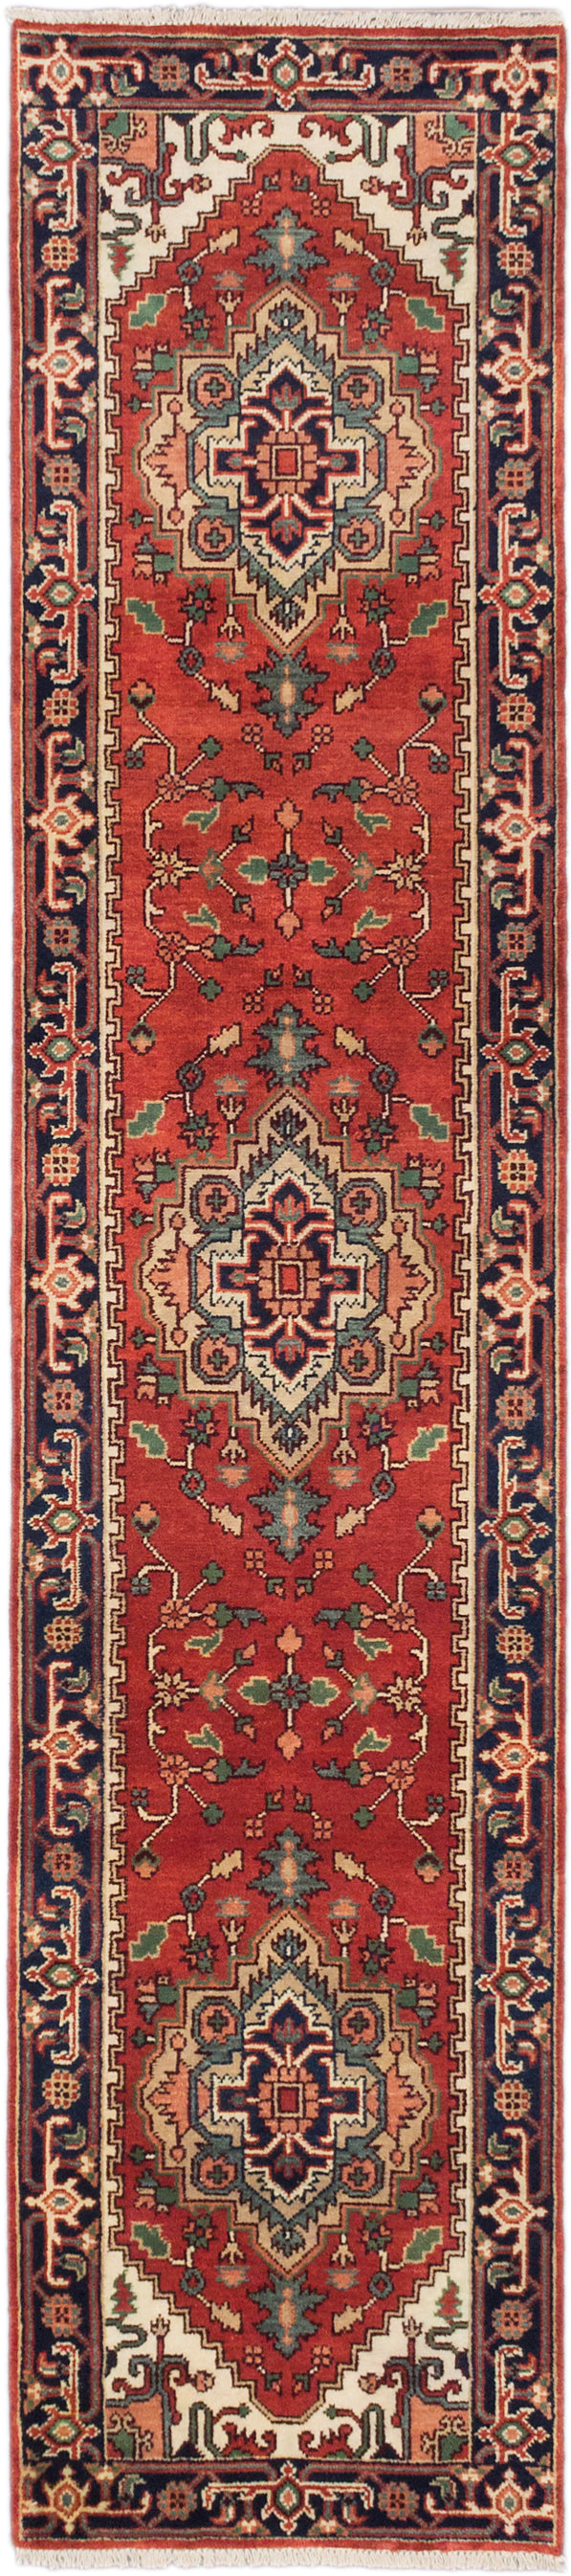 Hand-knotted Indian Floral  Traditional Serapi-Heritage Runner rug  Copper 2.8 x 12.1